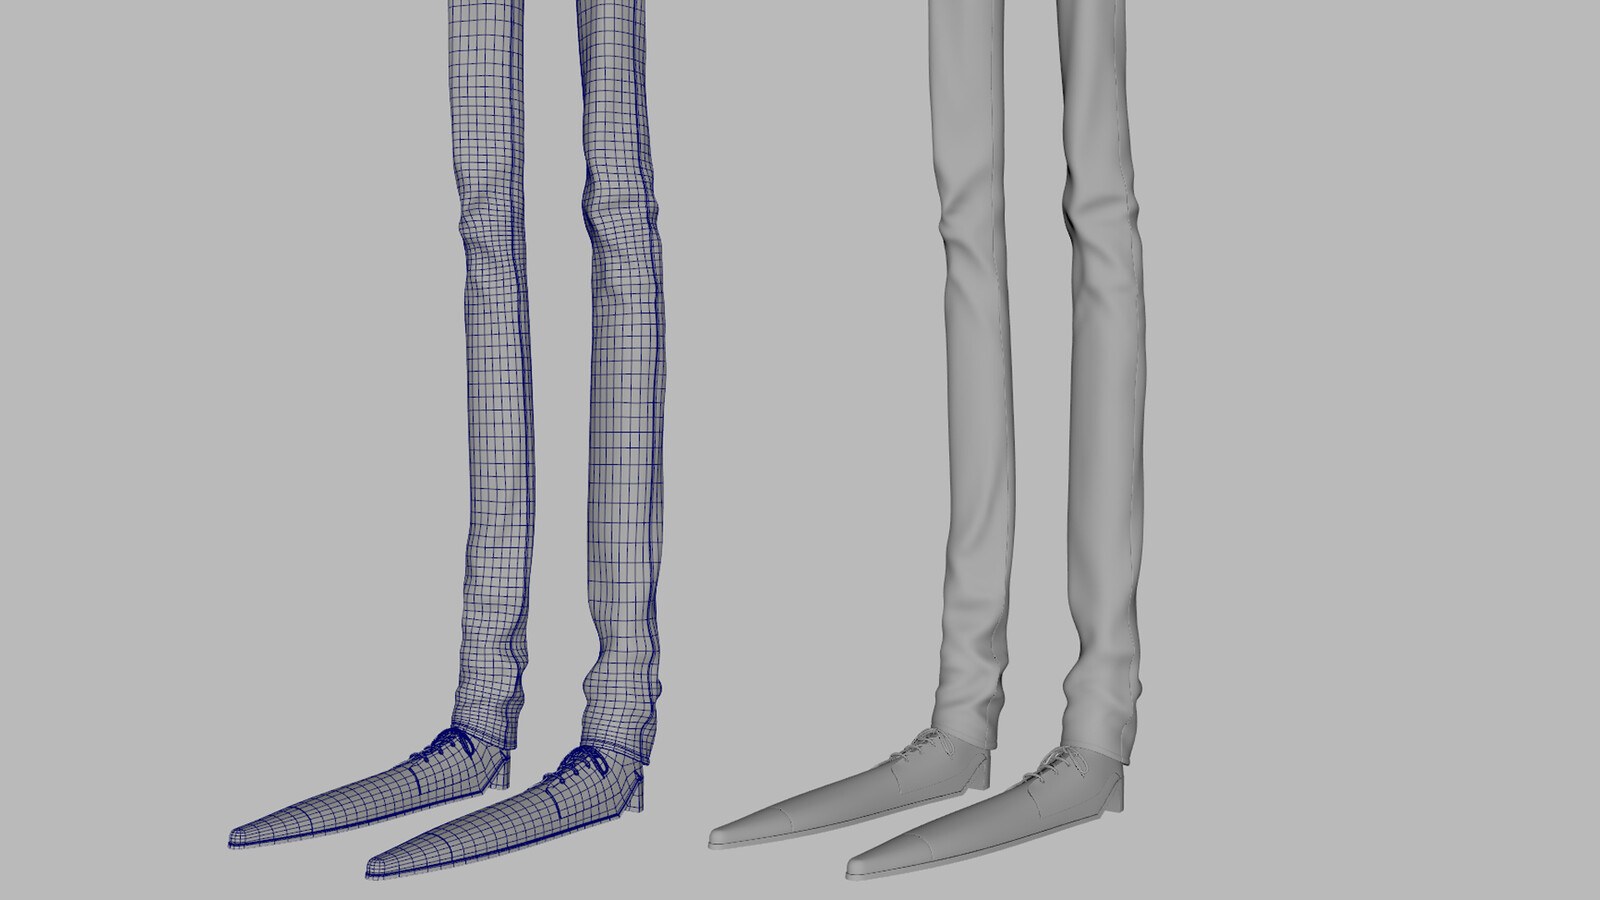 Legs wireframe